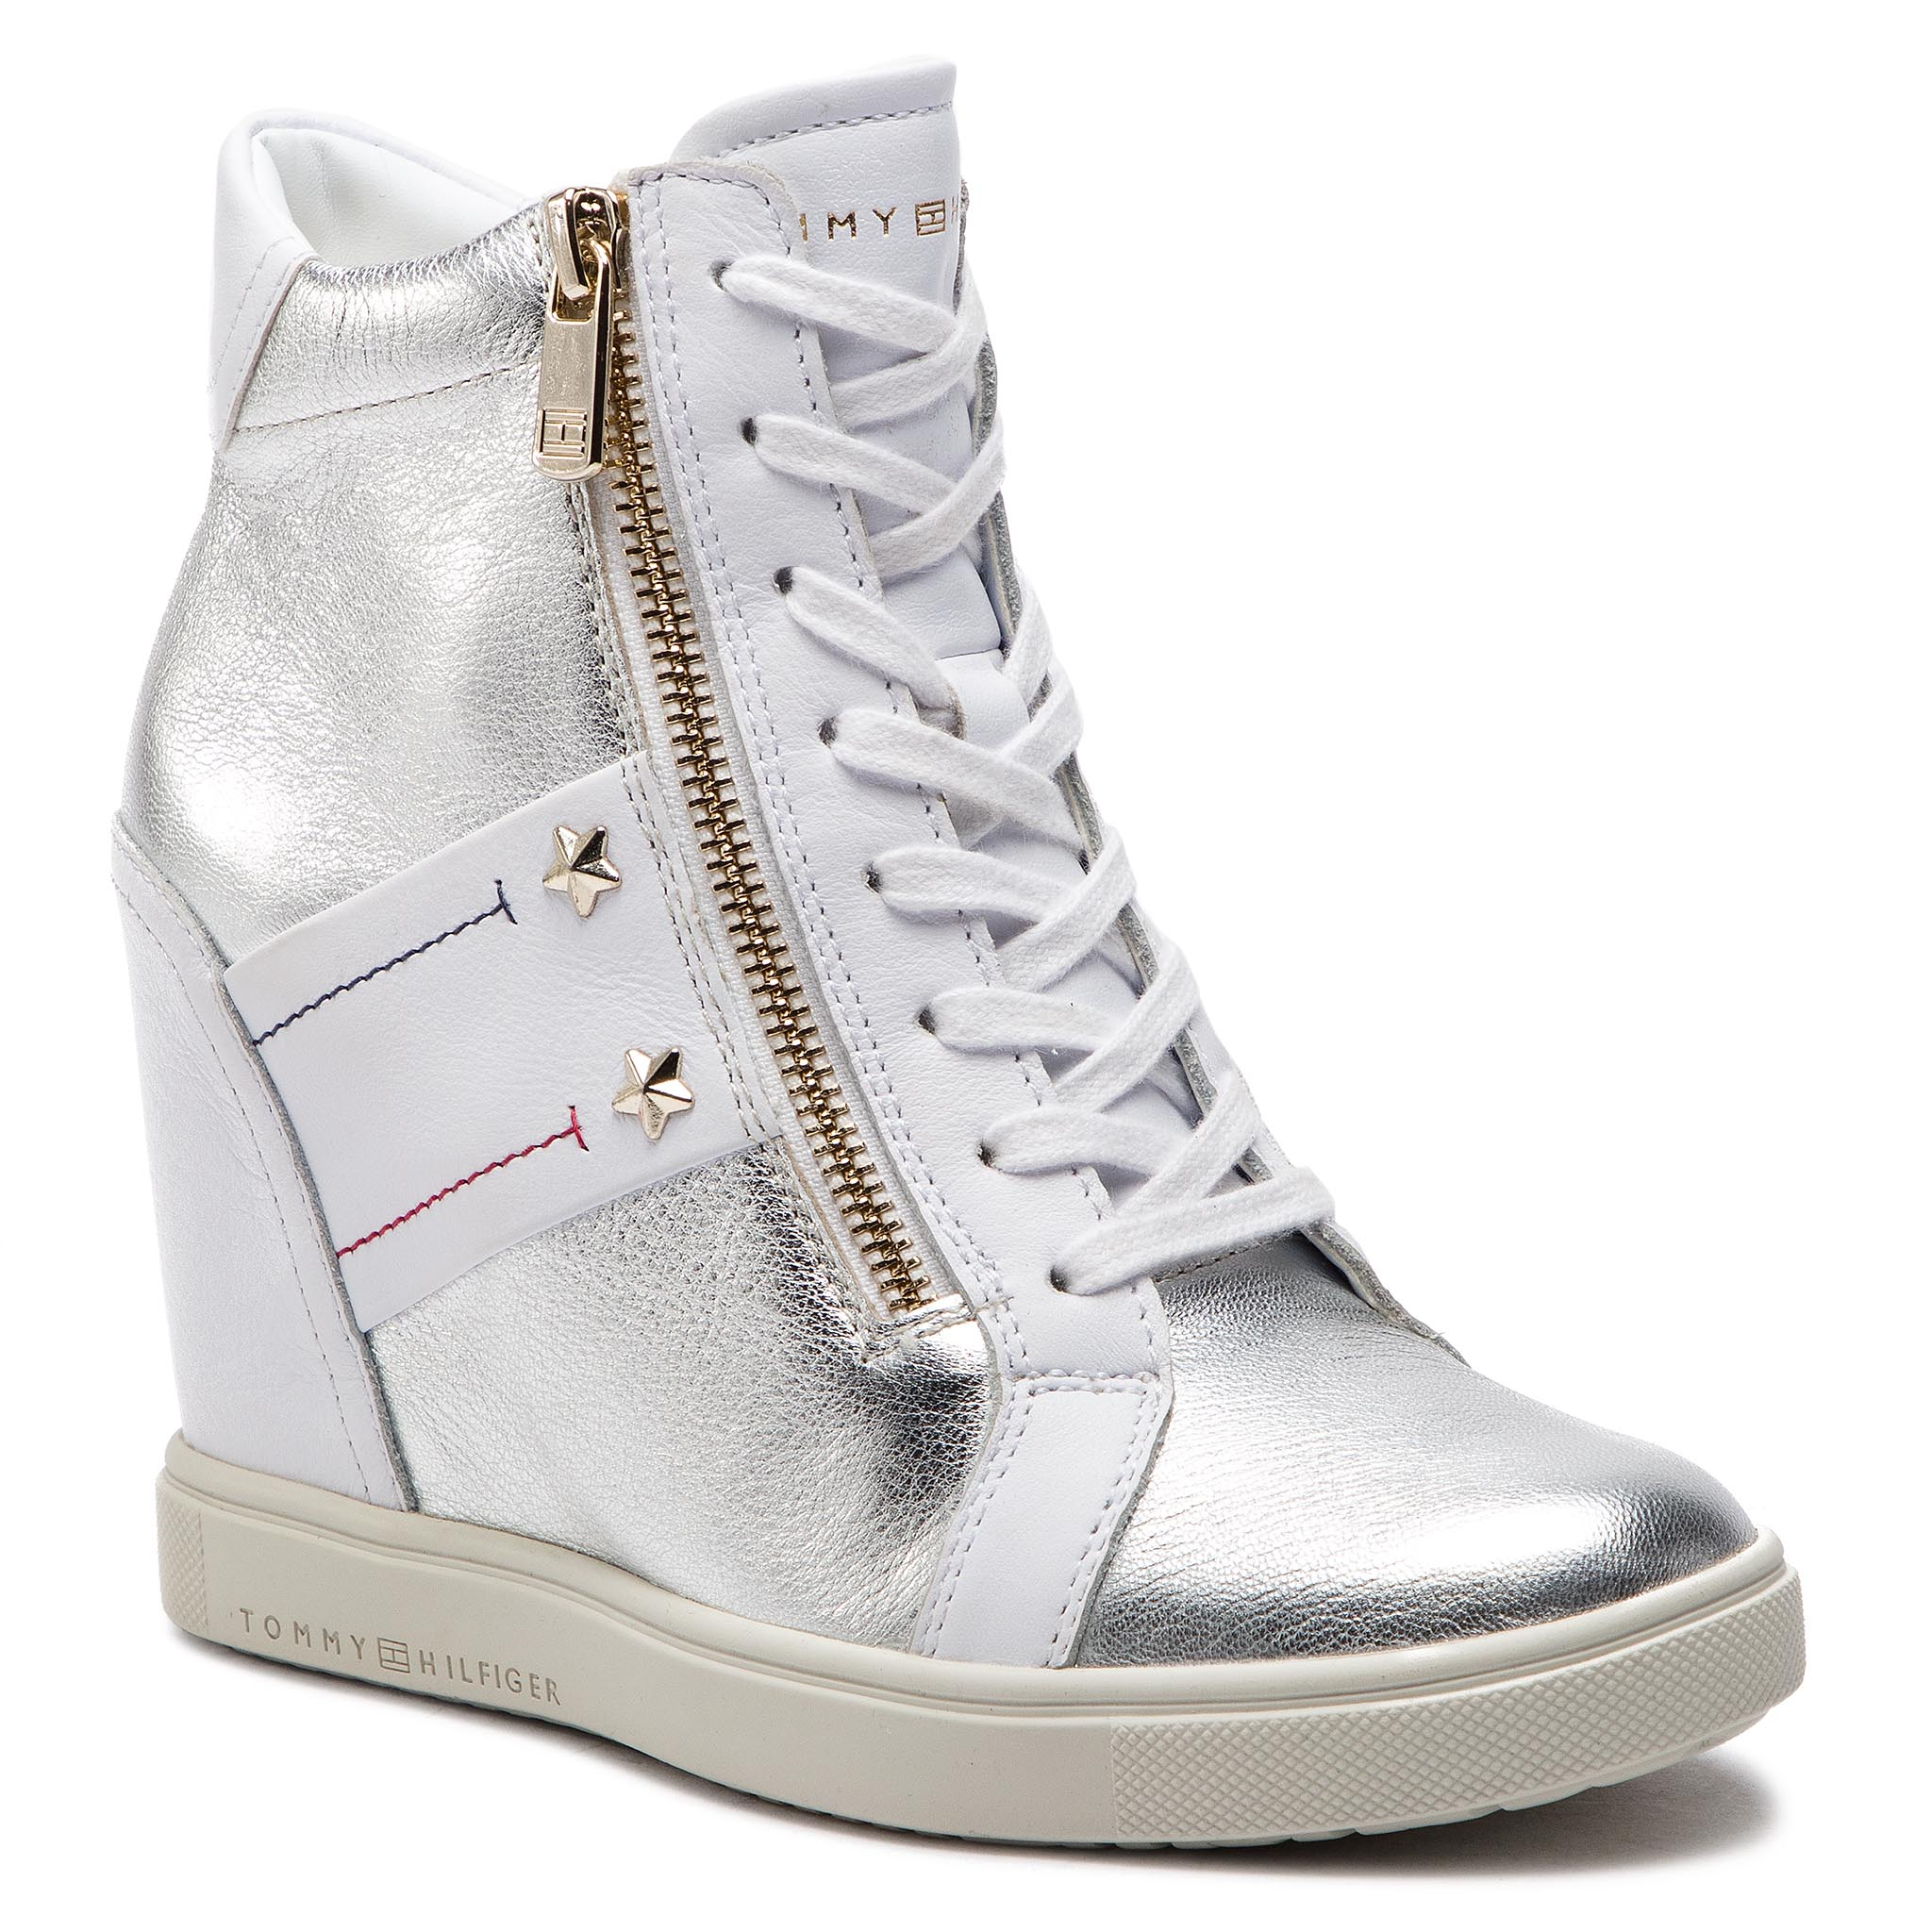 Sneakers TOMMY HILFIGER - Wedge Sneaker FW0FW03687 White 100